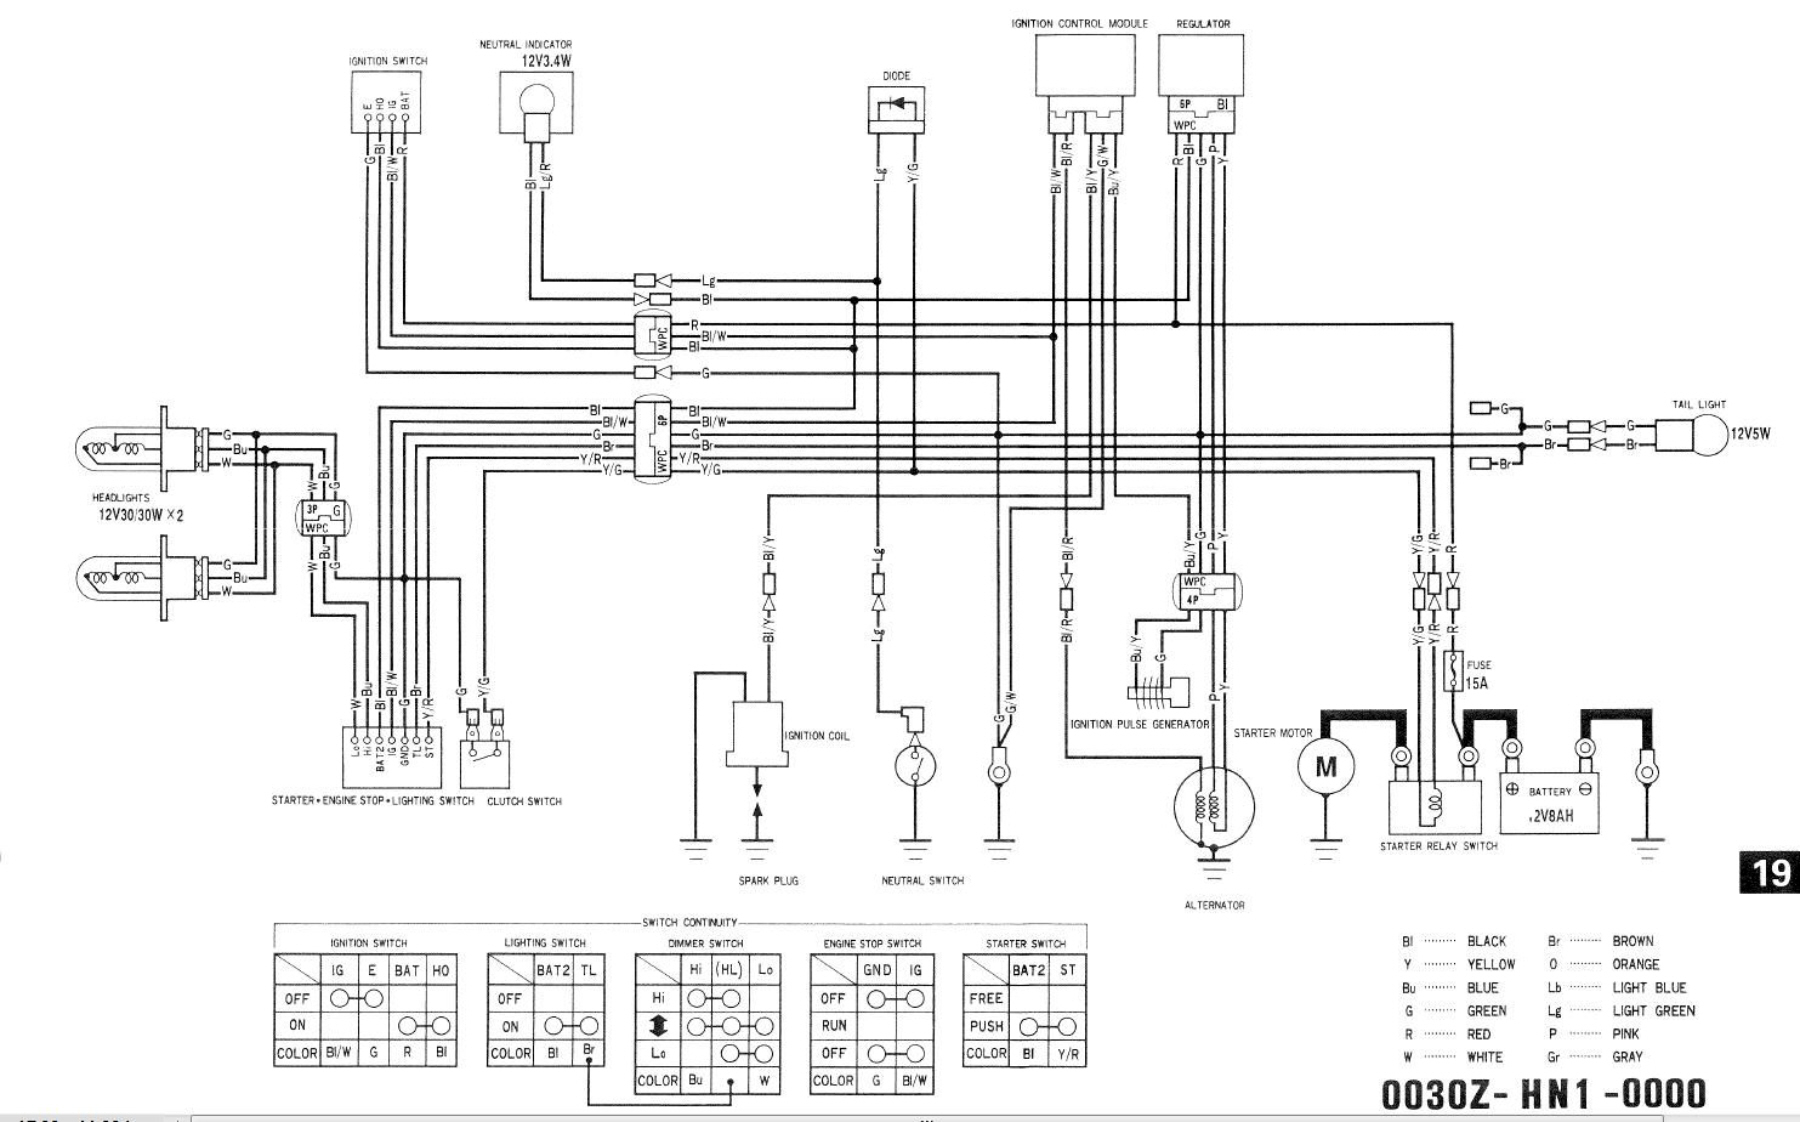 Yamaha Raptor 660 Wiring Diagram Yamaha Wiring Diagram